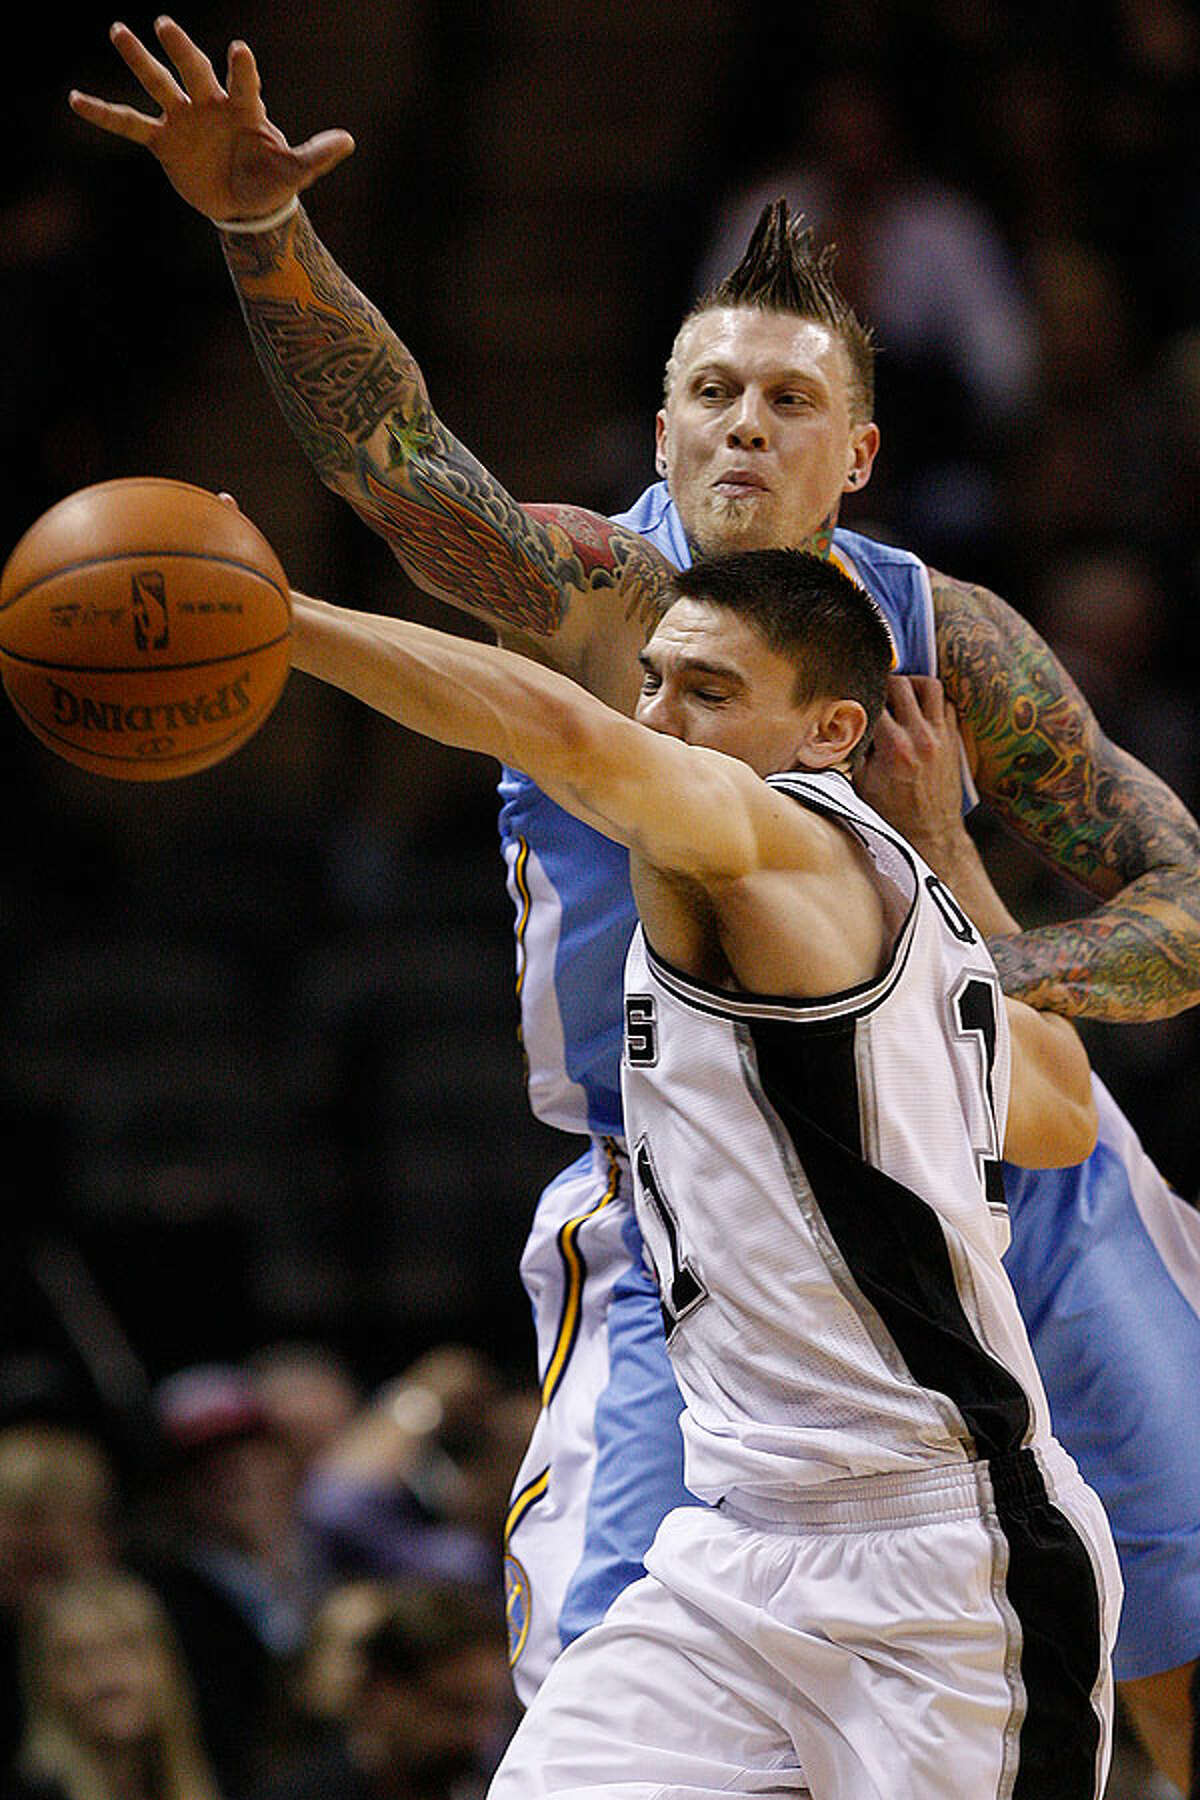 The Spurs' Chris Quinn steals a pass intended for the Nuggets' Chris Andersen during the second half at the AT&T Center, Wednesday. The Spurs won 109-103.